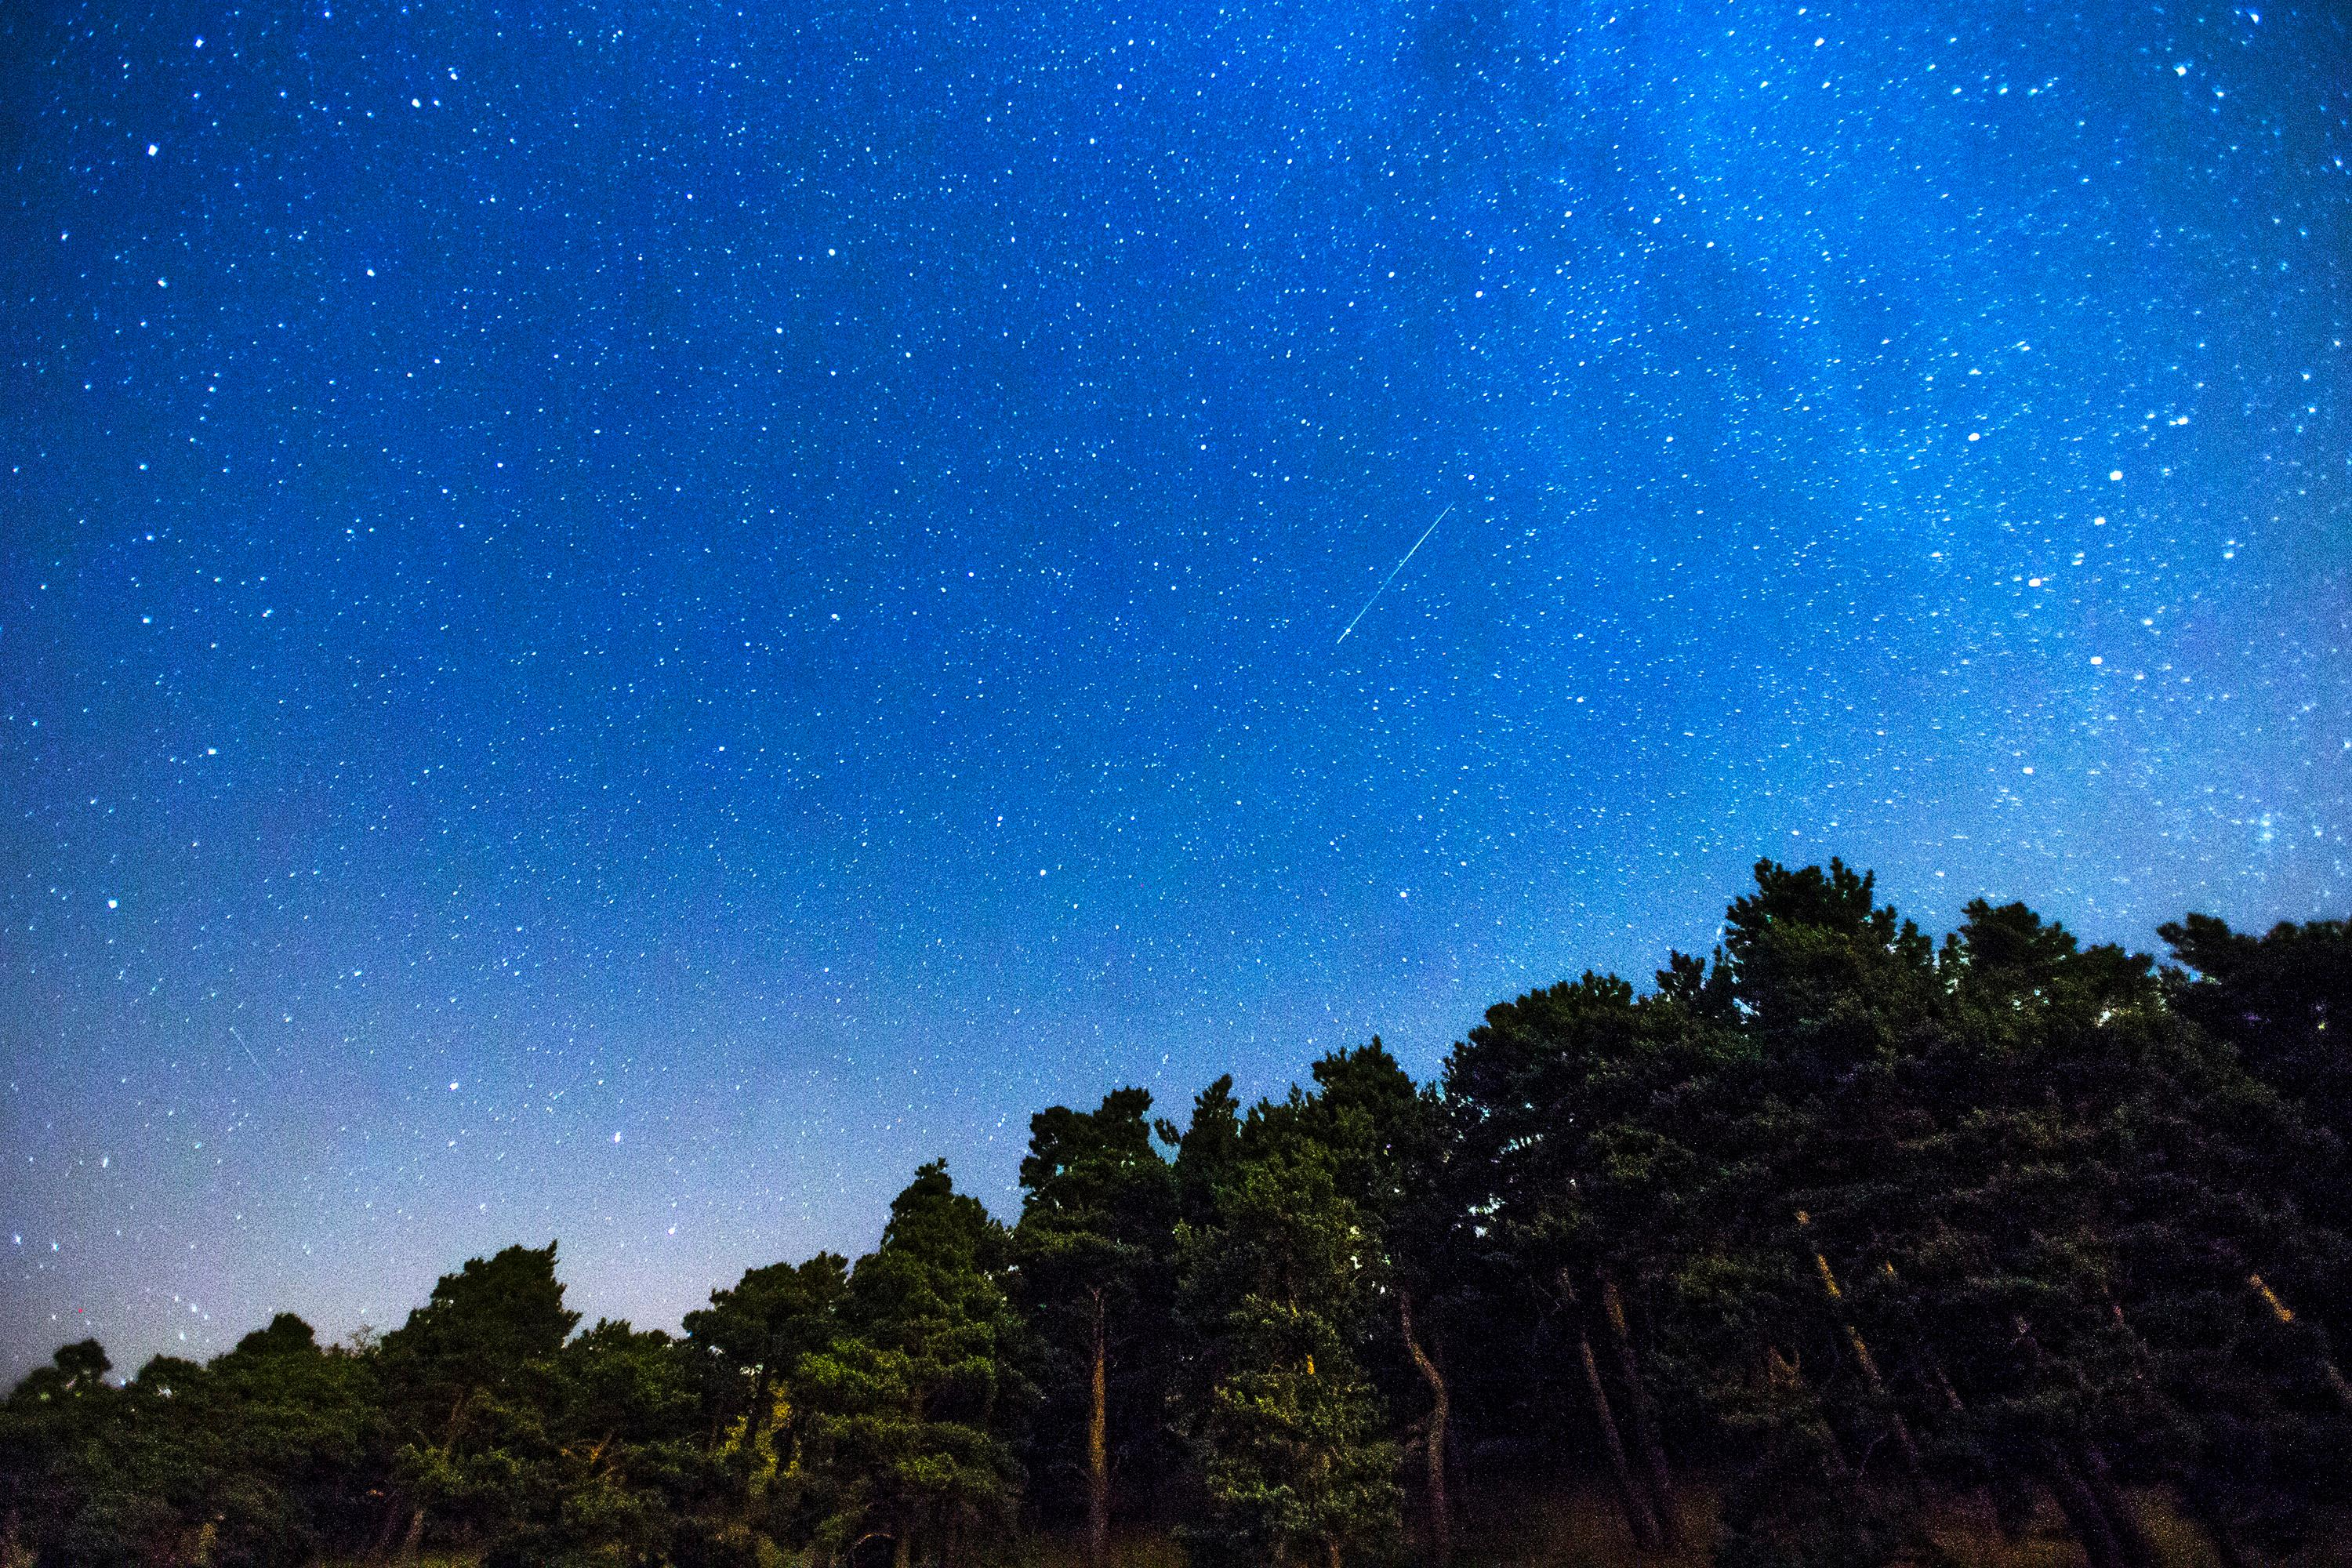 FILE – In this July 28, 2014, file photo, two meteors, center and lower left, during the annual Perseid meteor shower streak across the sky above a forest on the outskirts of Madrid. The AP reported on Aug. 4, 2017, that the peak of the annual Perseid meteor shower on Aug. 11 and 12 won't come close to setting any records. The head of NASA's meteoroid environment office, Bill Cooke, tells AP that astronomers project a slightly higher than normal shower rate with 150 meteors per hour across the Northern Hemisphere, but the brightness of the moon will wash out the finer Perseids. (AP Photo/Andres Kudacki, File)